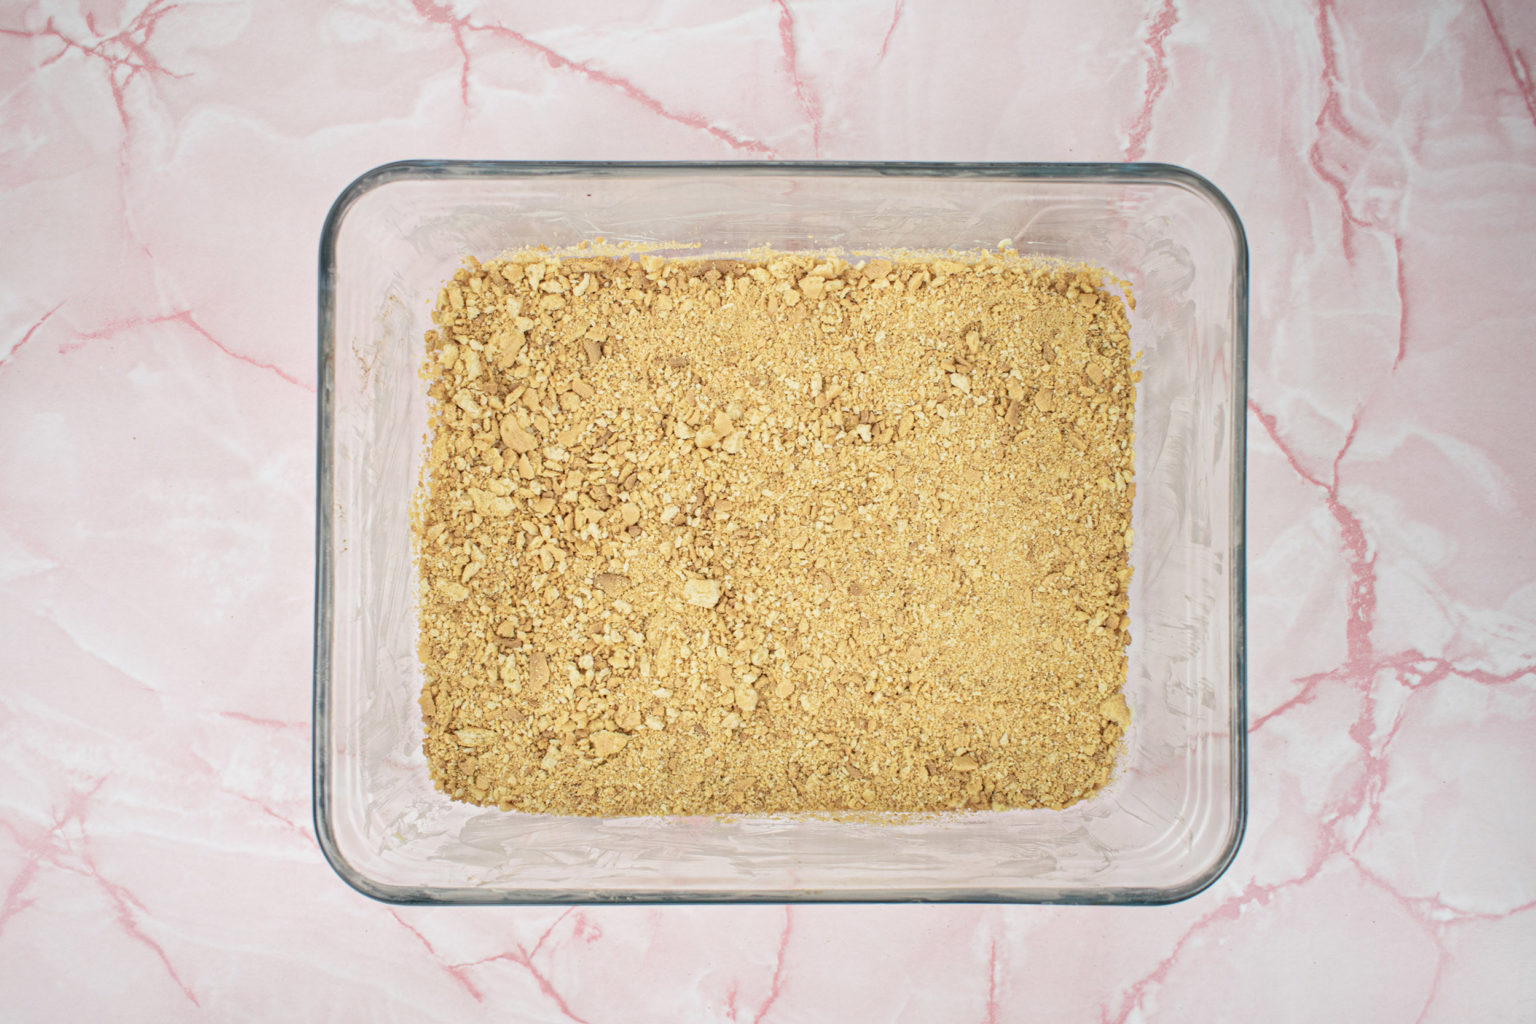 Biscuit layer in glass tray